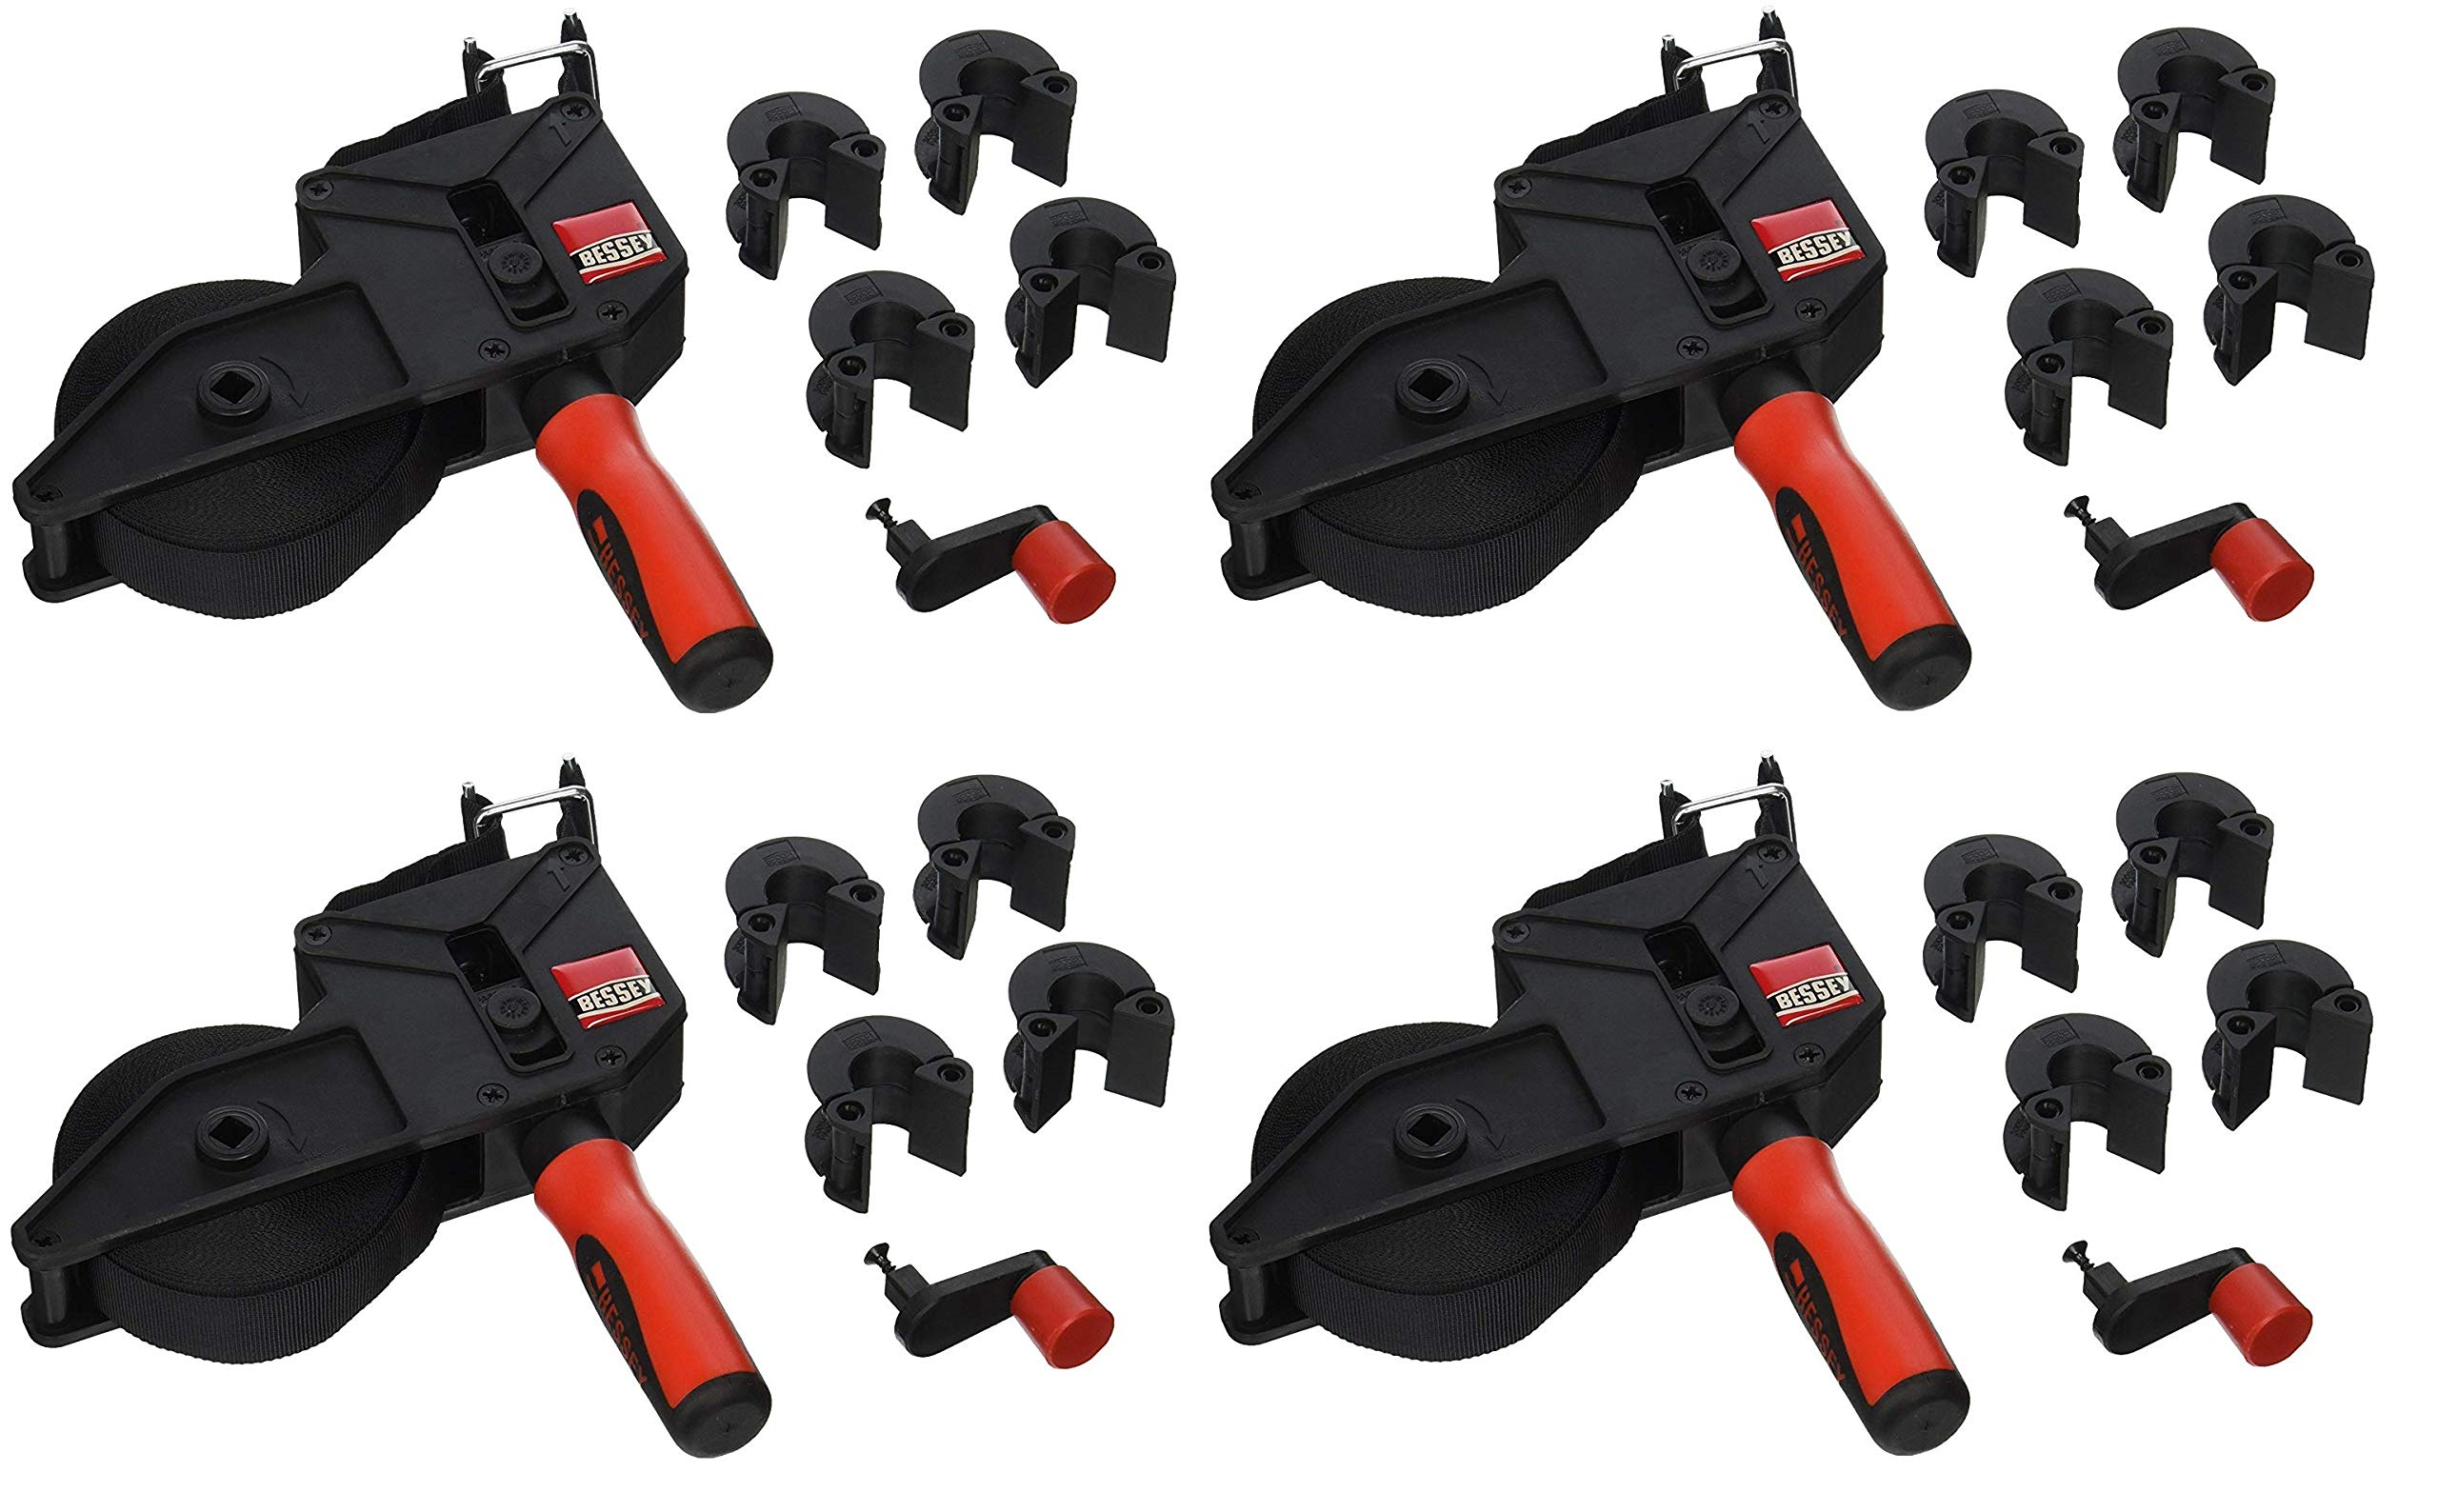 Bessey VAS-23+2K Vario Angle Strap Clamp (Pack of 4) by Bessey